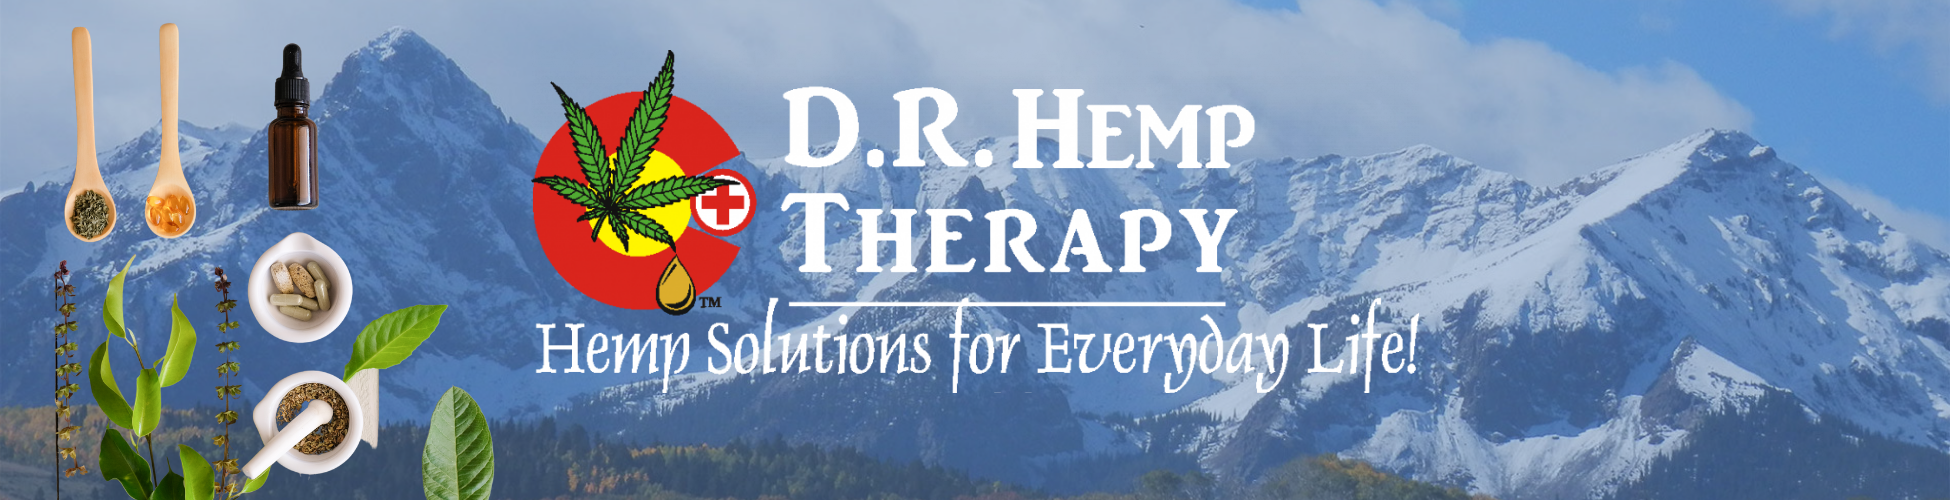 D.R. Hemp Therapy Banner